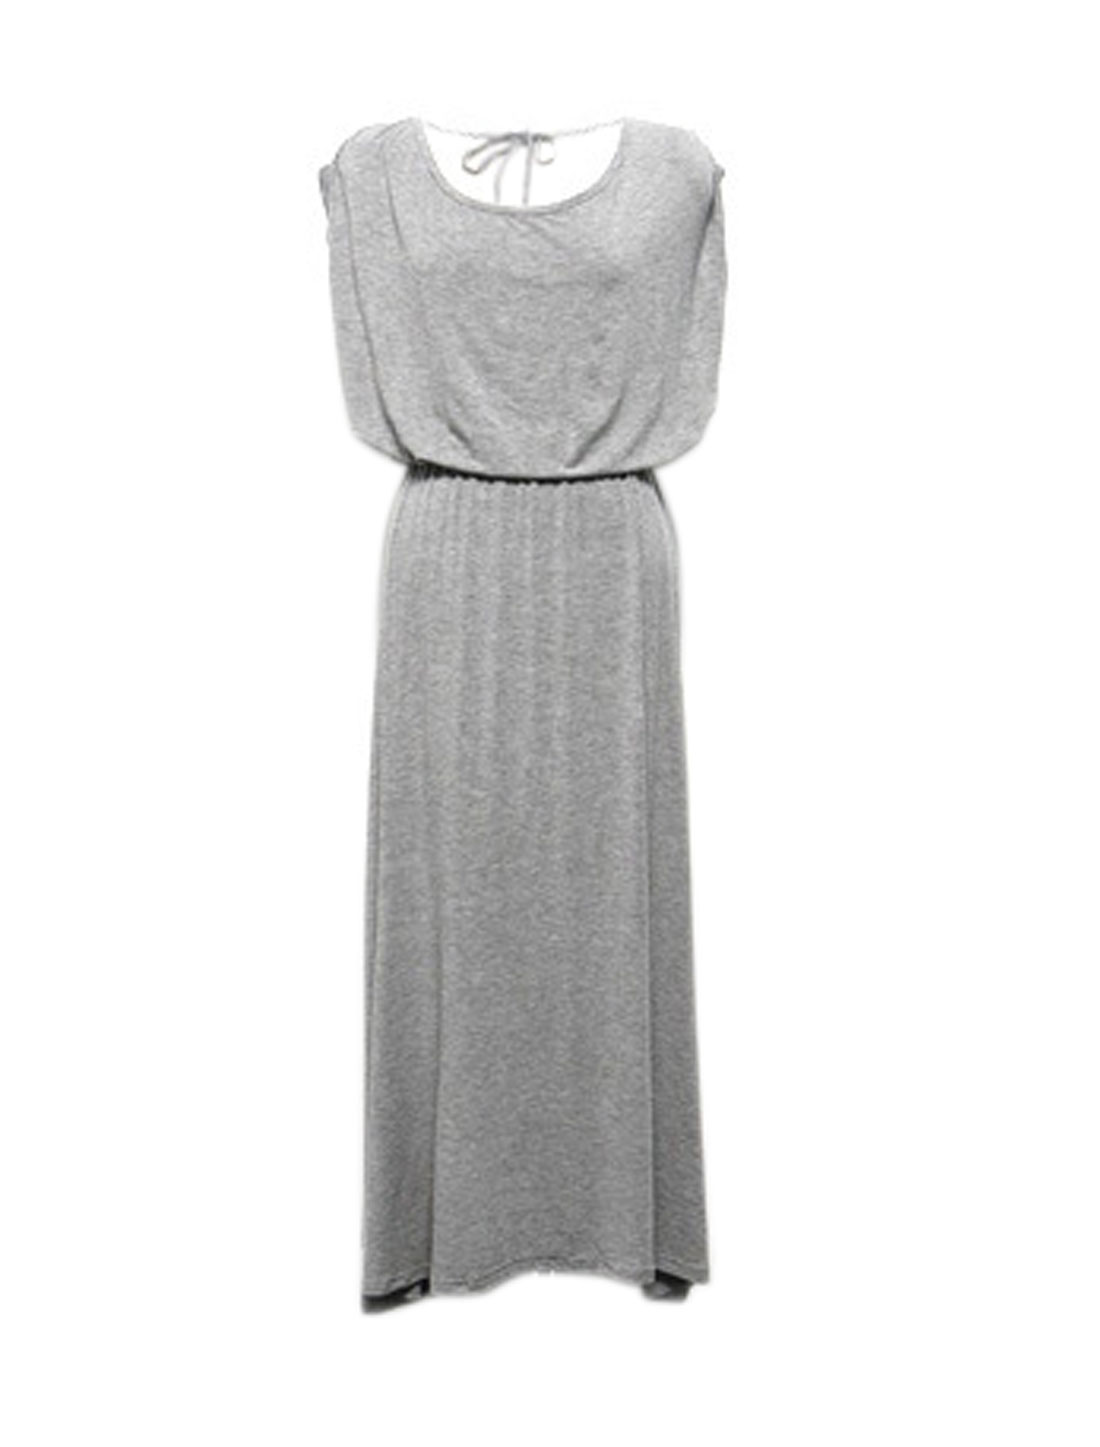 Women Scoop Neck Open Back Elastic Waist Dress w Tube Top Sets Gray S